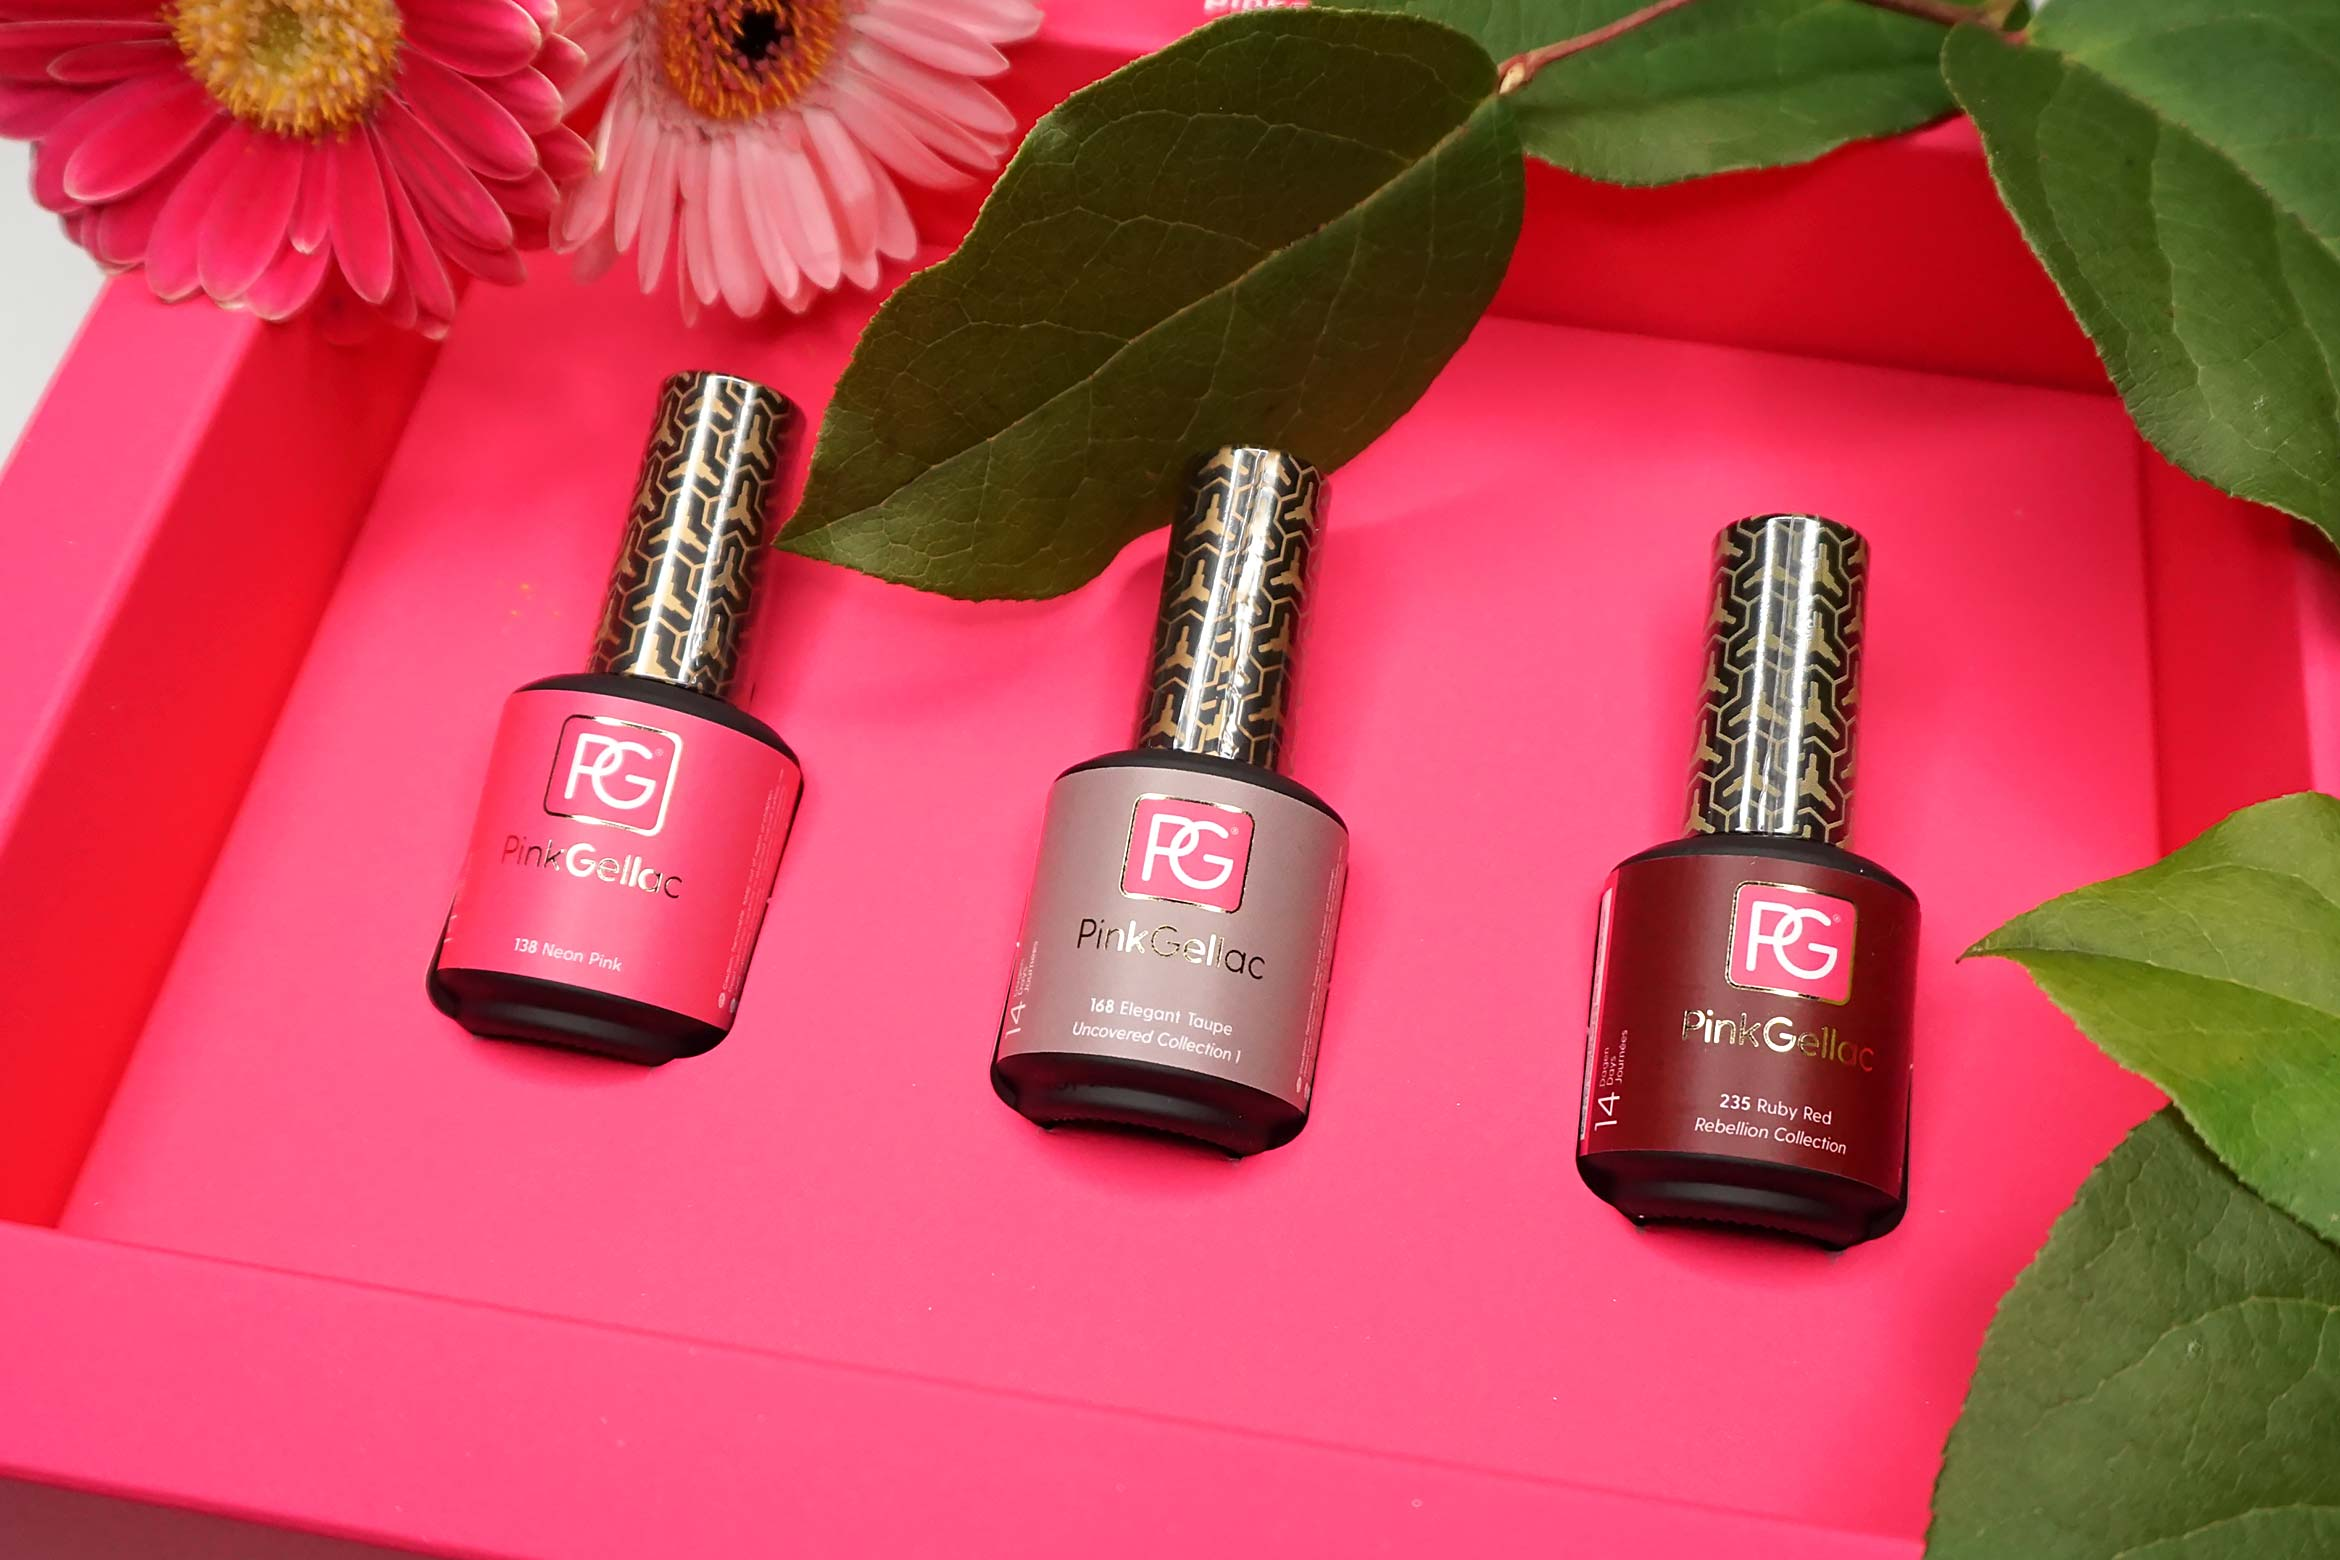 pink-gellac-review-1